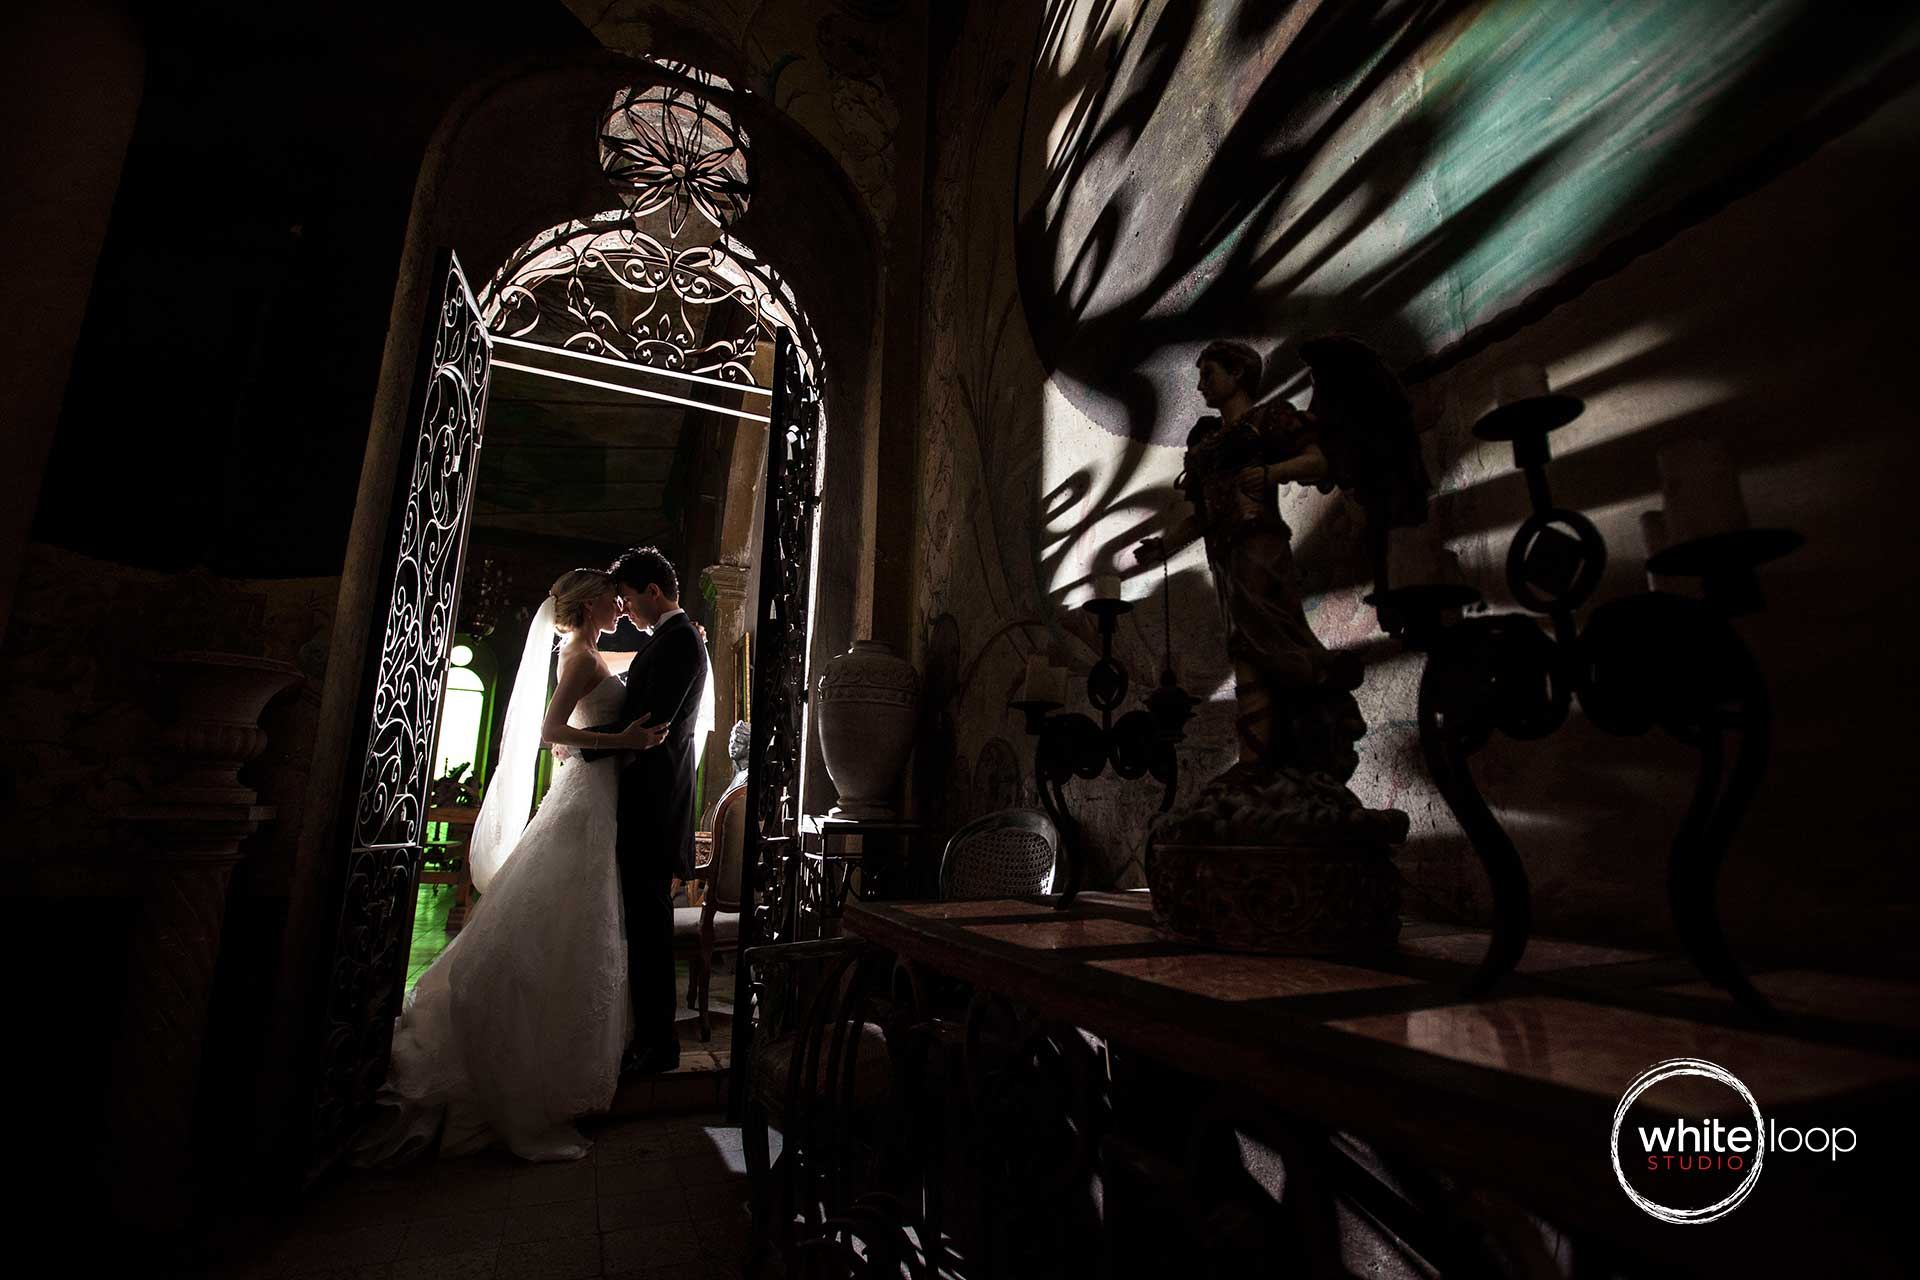 The bride and groom backlit embraced in one of the main doors of this house.